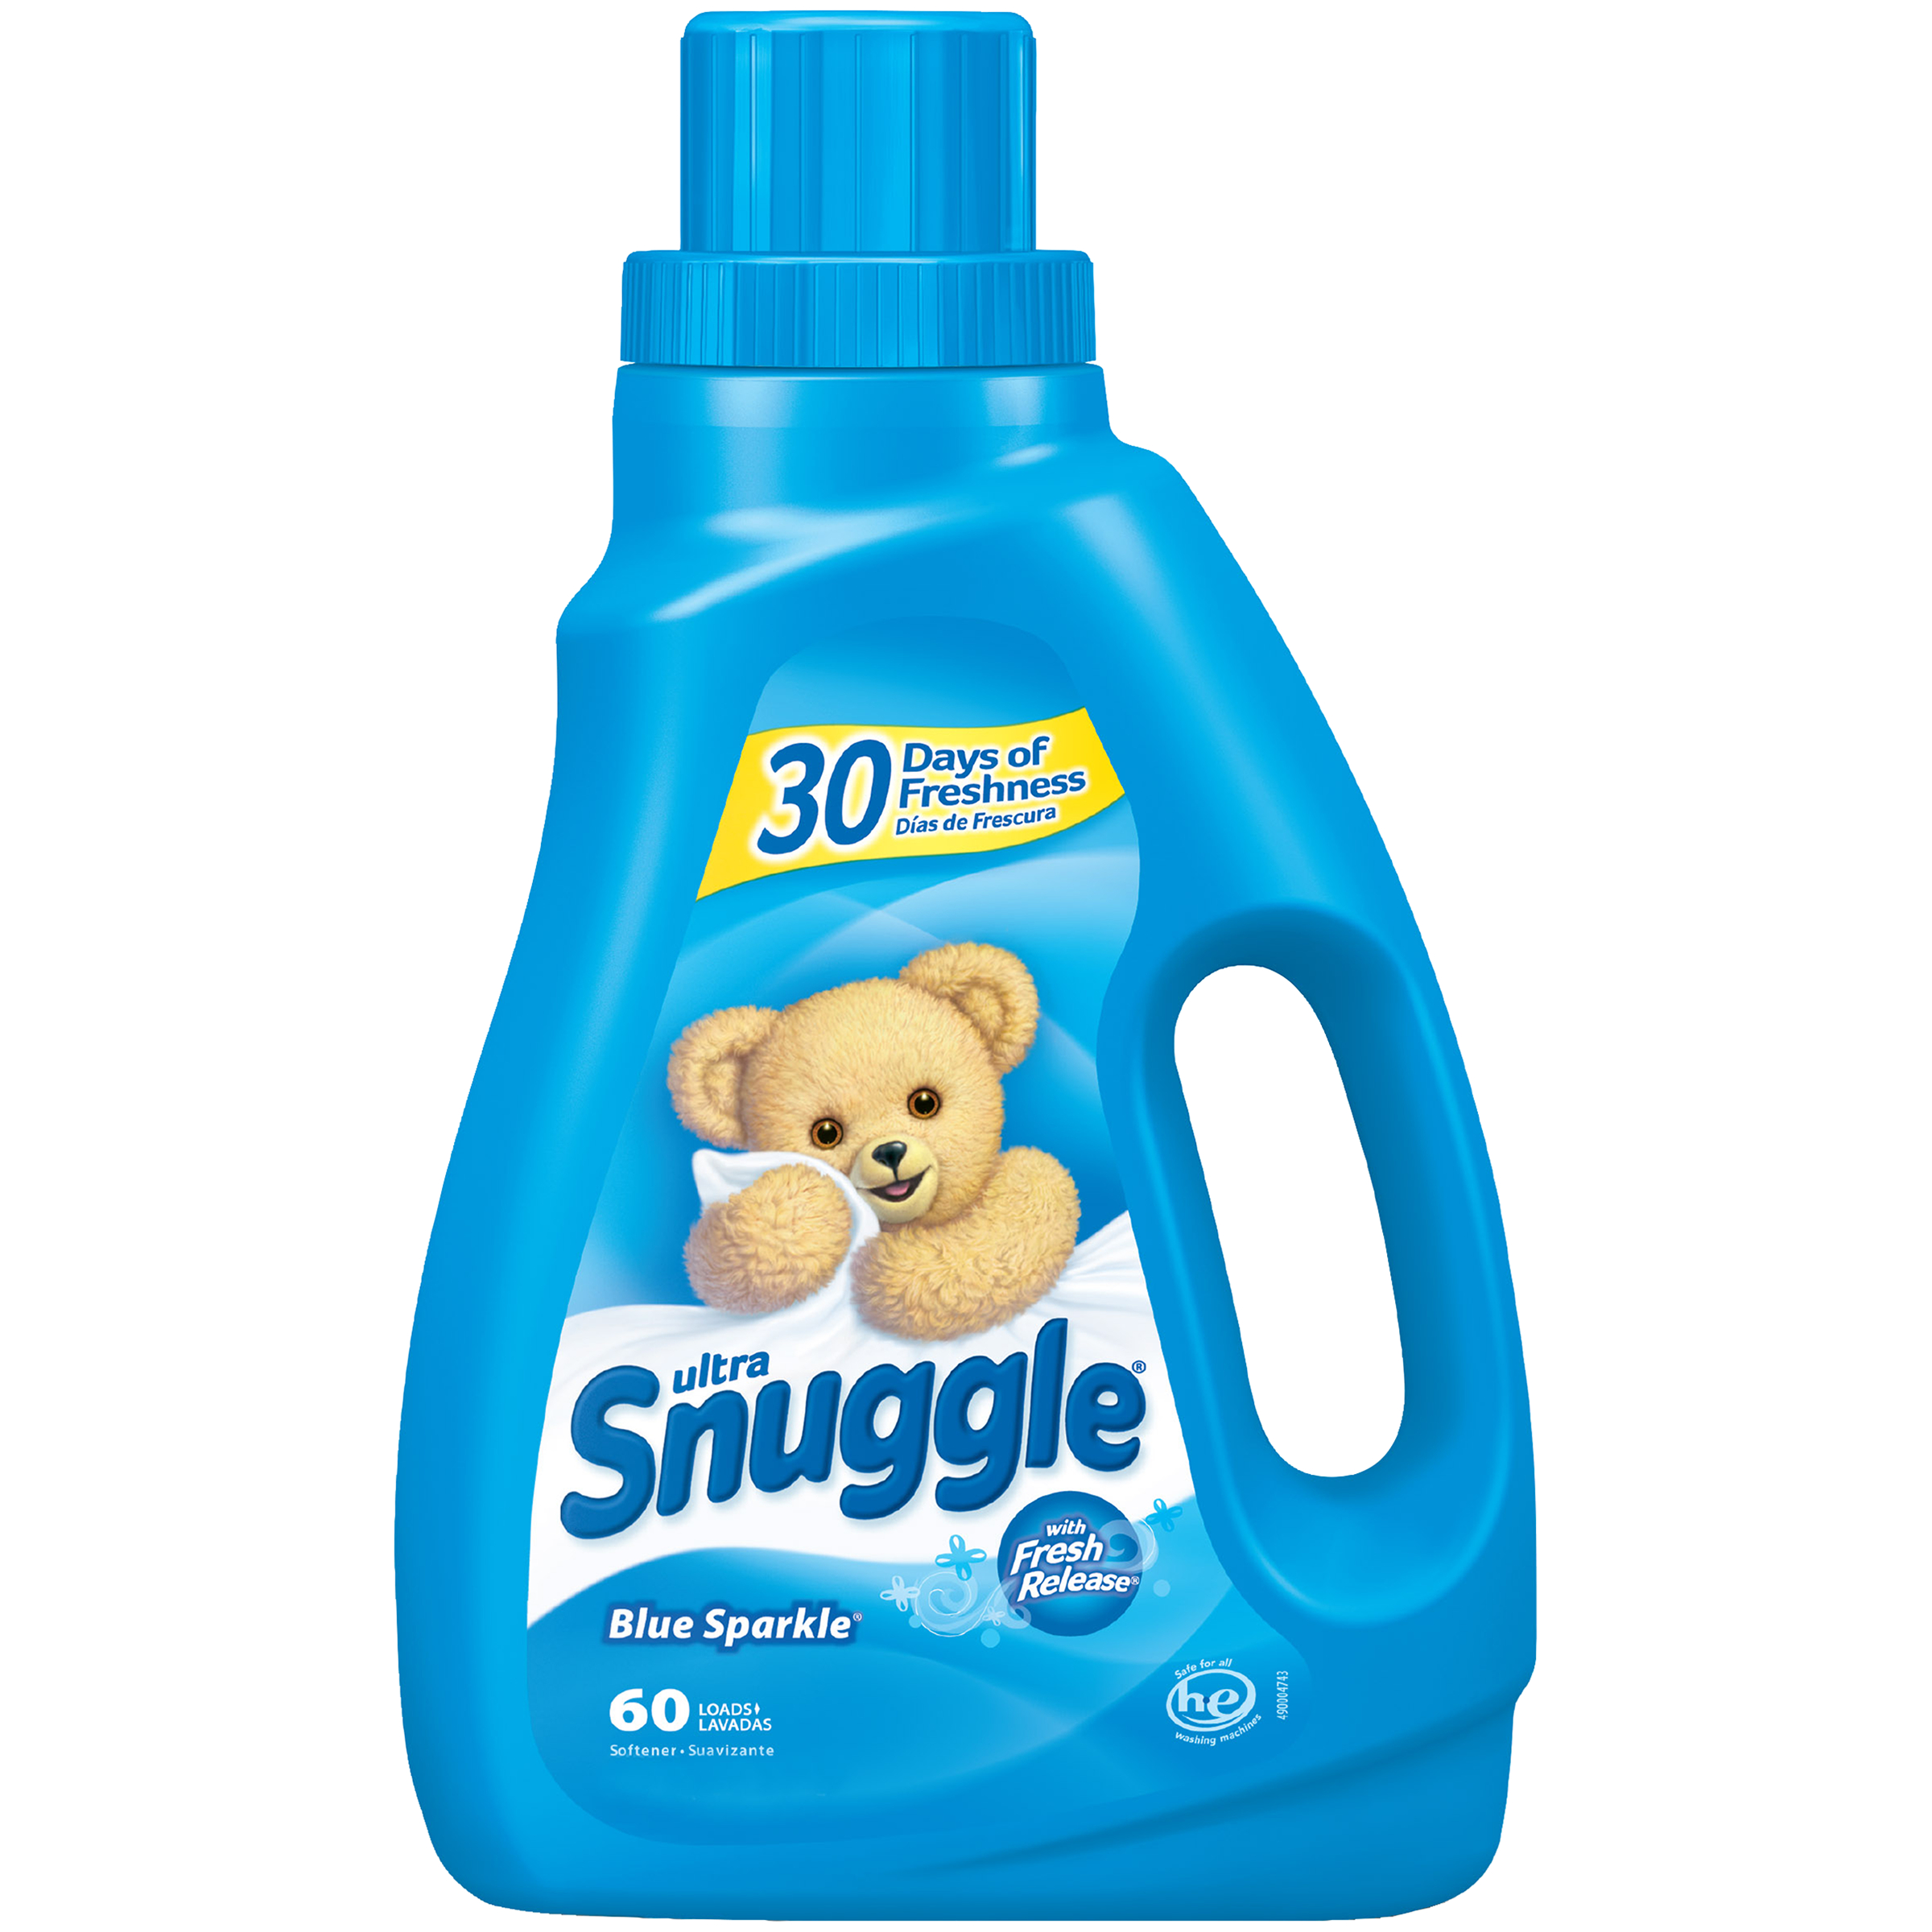 Snuggle Liquid Fabric Softener, Blue Sparkle, 50 Oz